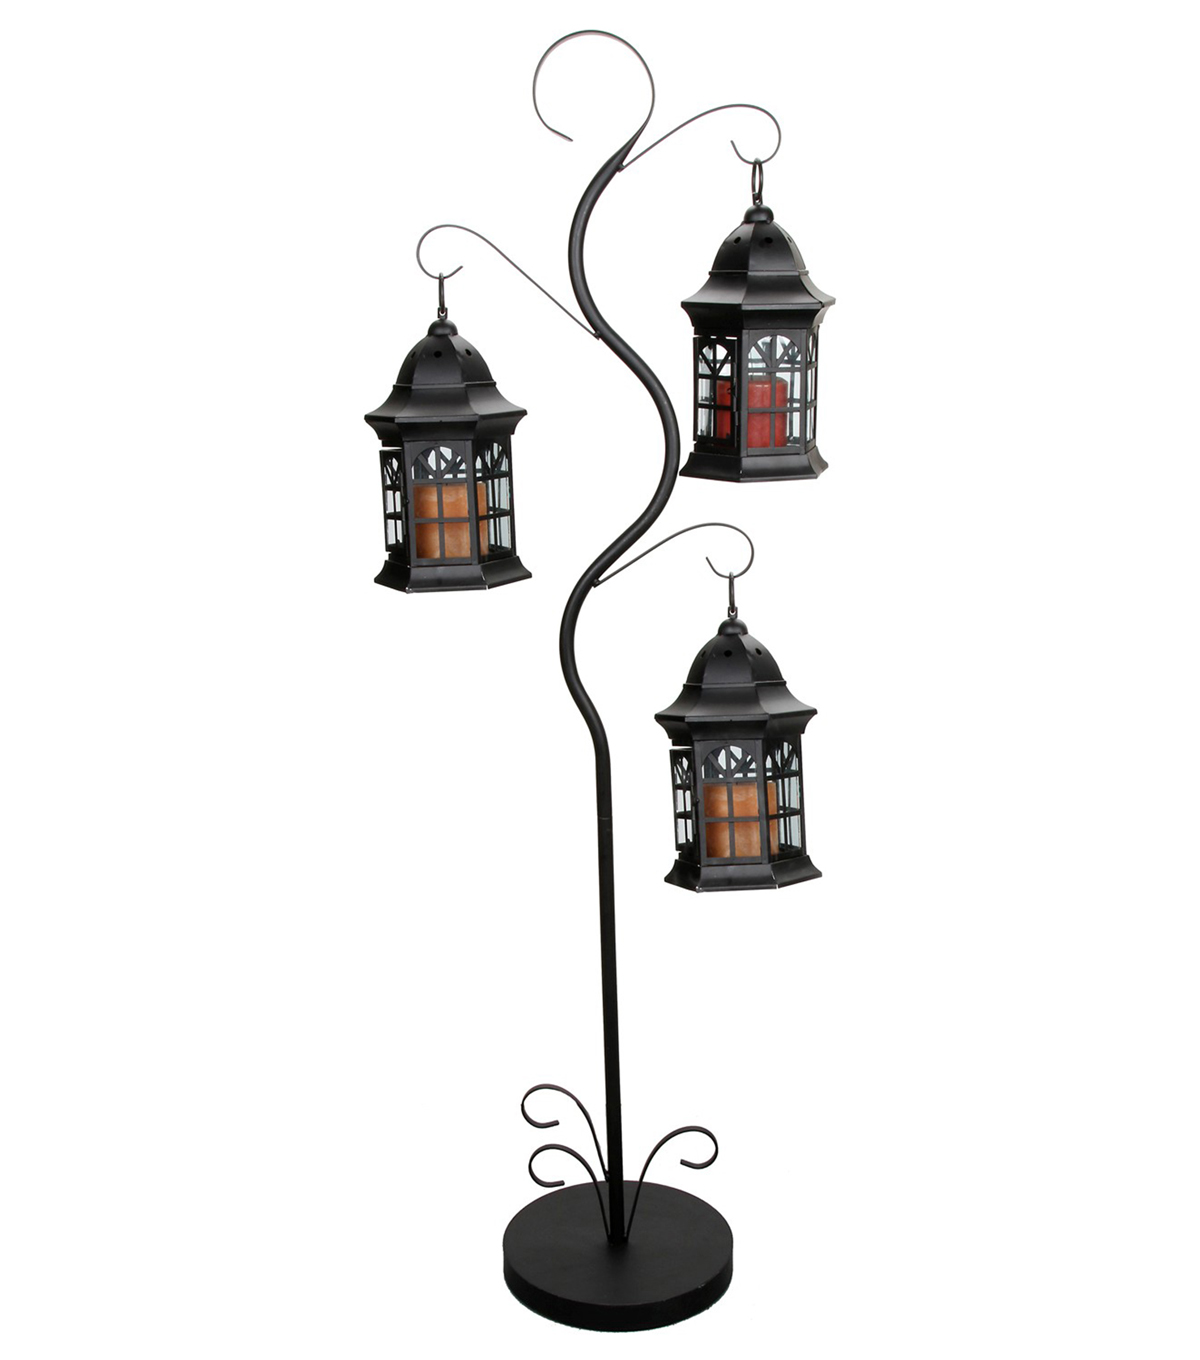 metal glass lantern51 x 10 x 10 inches